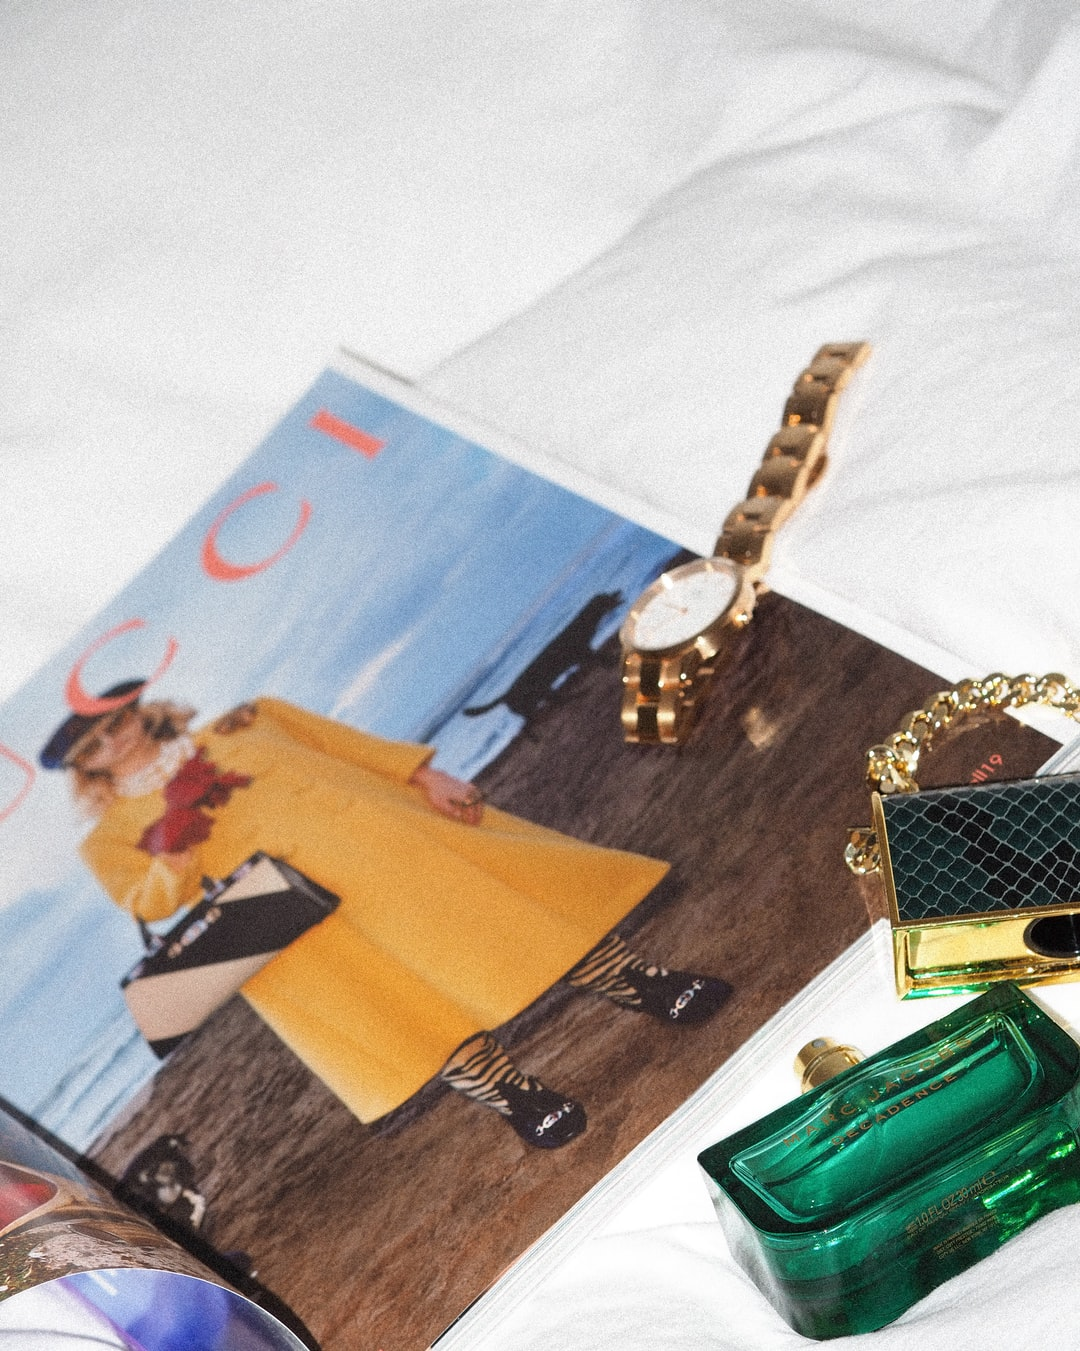 Marc Jacobs Decadence Perfume - Gucci - Vogue - Watch by Daniel Wellington. By Laura Chouette (Fashion-Photographer) Instagram: @Laura Chouette